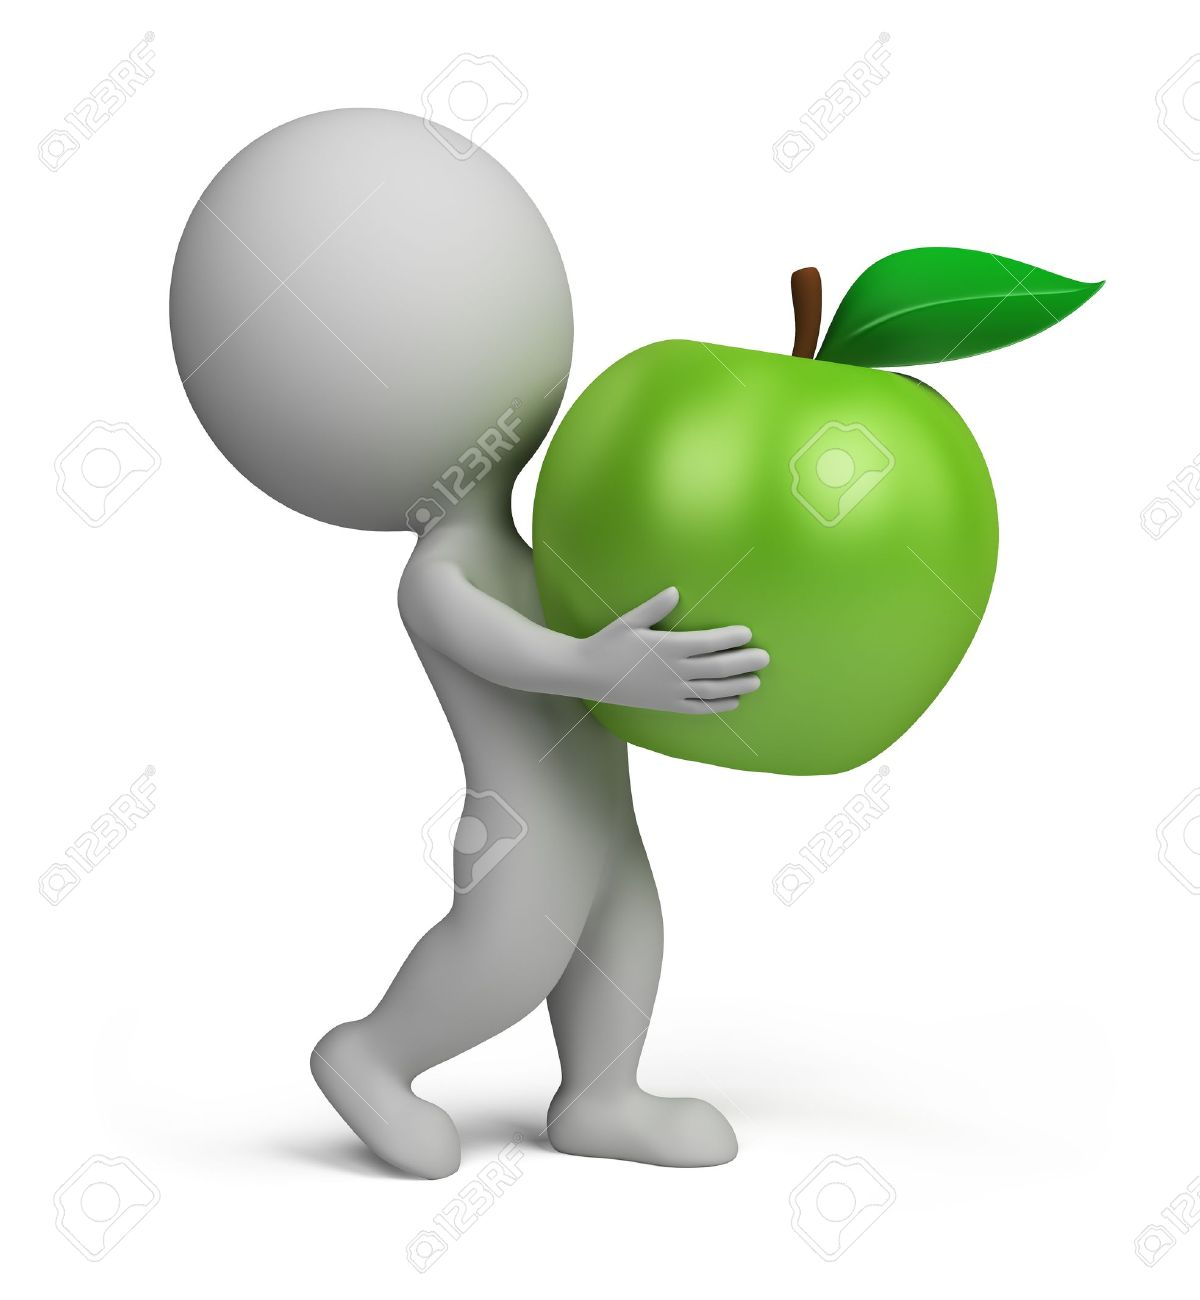 3d small person carrying a green apple. 3d image. Isolated white background. Stock Photo - 10993442